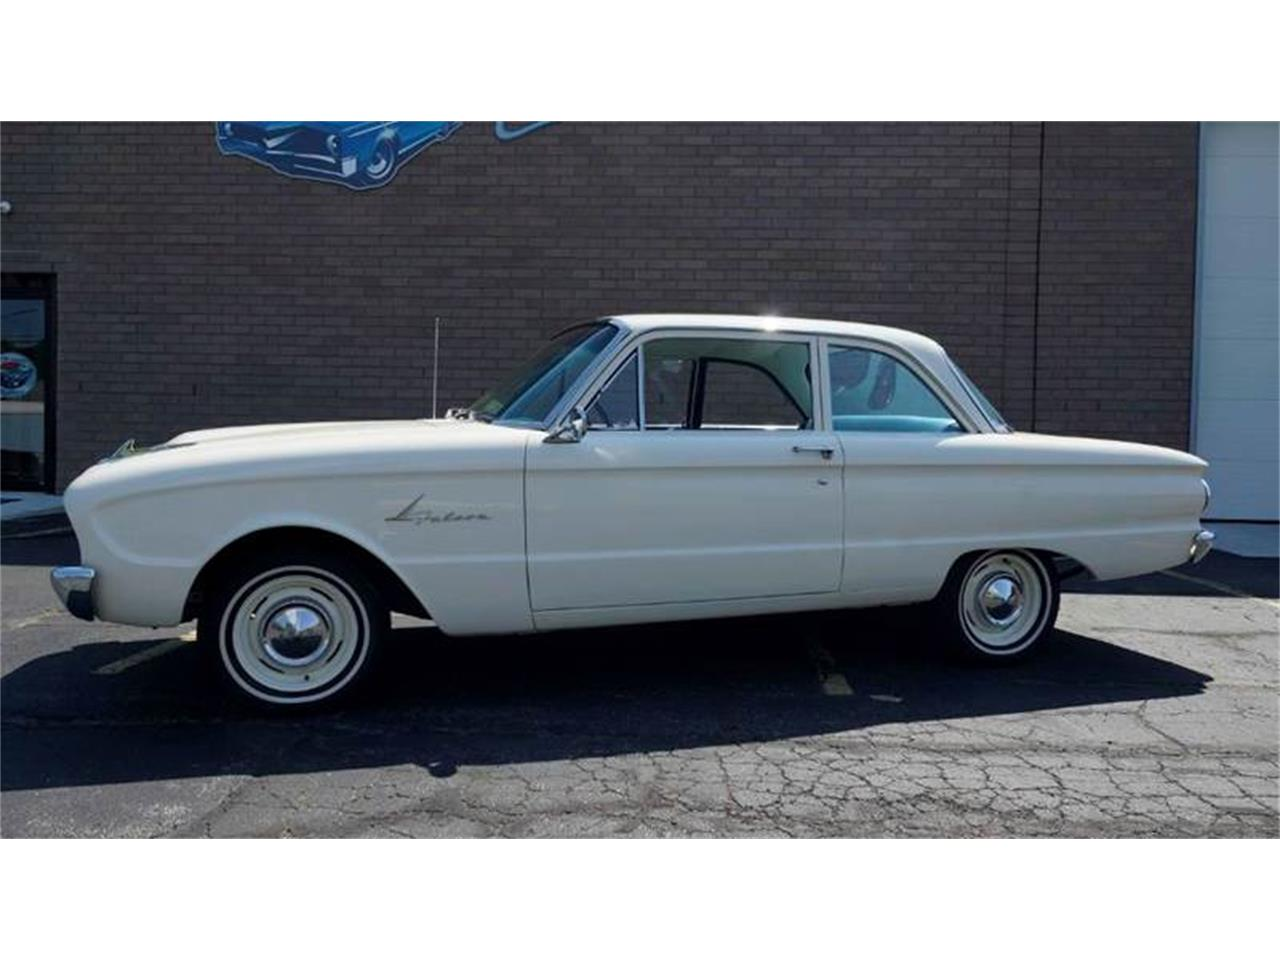 Large picture of 61 ford falcon ovnr